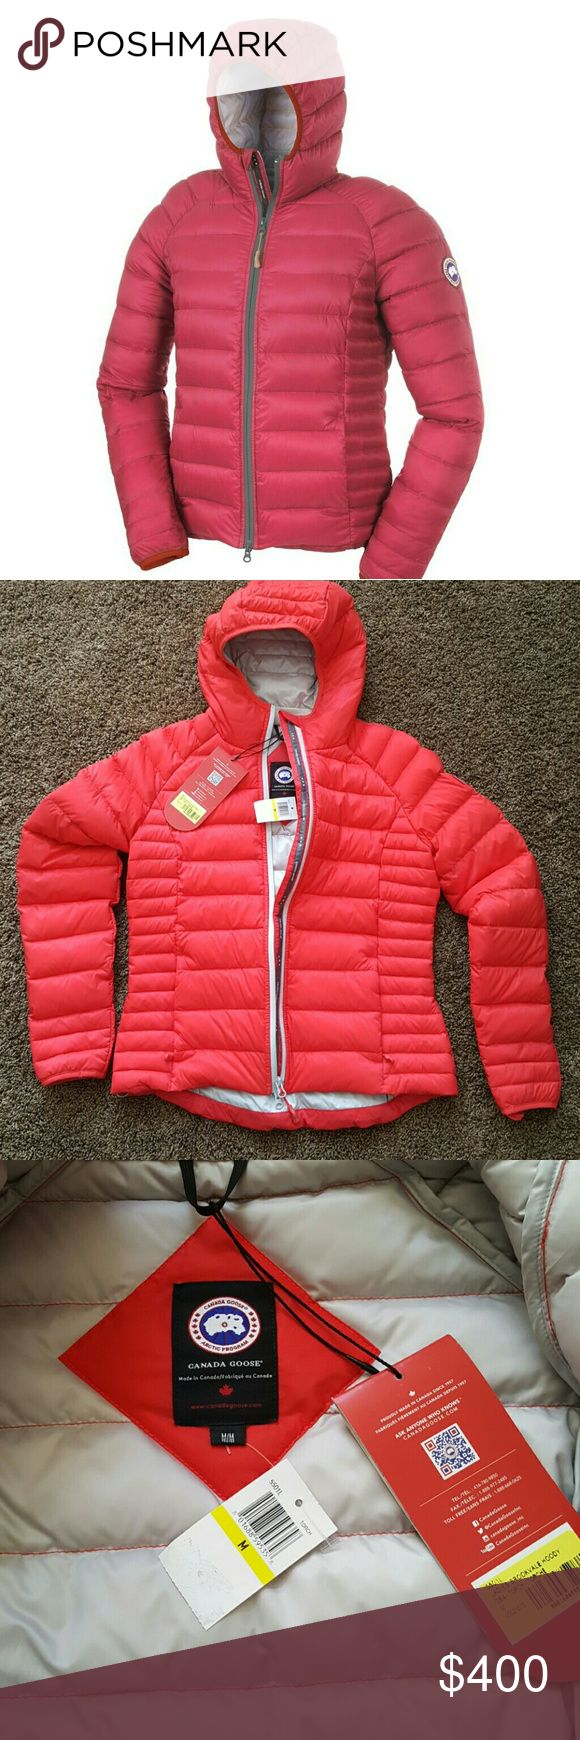 Canada Goose Brookvale Hoody - Women's Torch Its brand new with tags  Clothing sizeM ColorTorch LabelCanada Goose Package quantity1 Part number5501L PublisherCanada Goose UPC : 801688595358 Color : Torch Model : 5501L-284-M Size : Medium Canada Goose Jackets & Coats Puffers